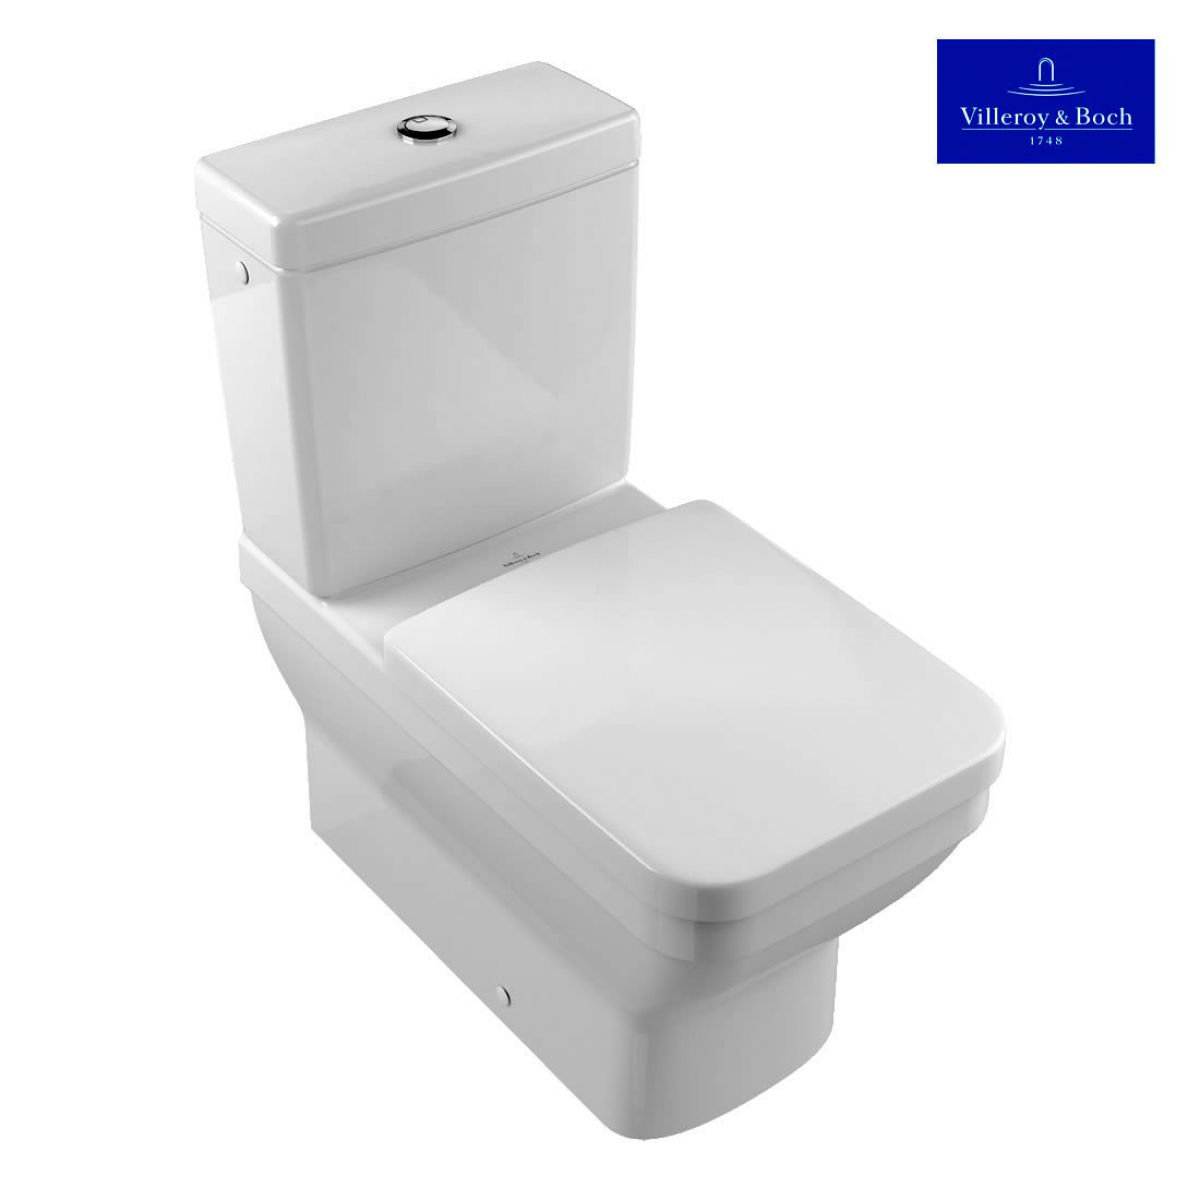 toilet accessoires villeroy boch 042155 ontwerp inspiratie voor de badkamer en de. Black Bedroom Furniture Sets. Home Design Ideas